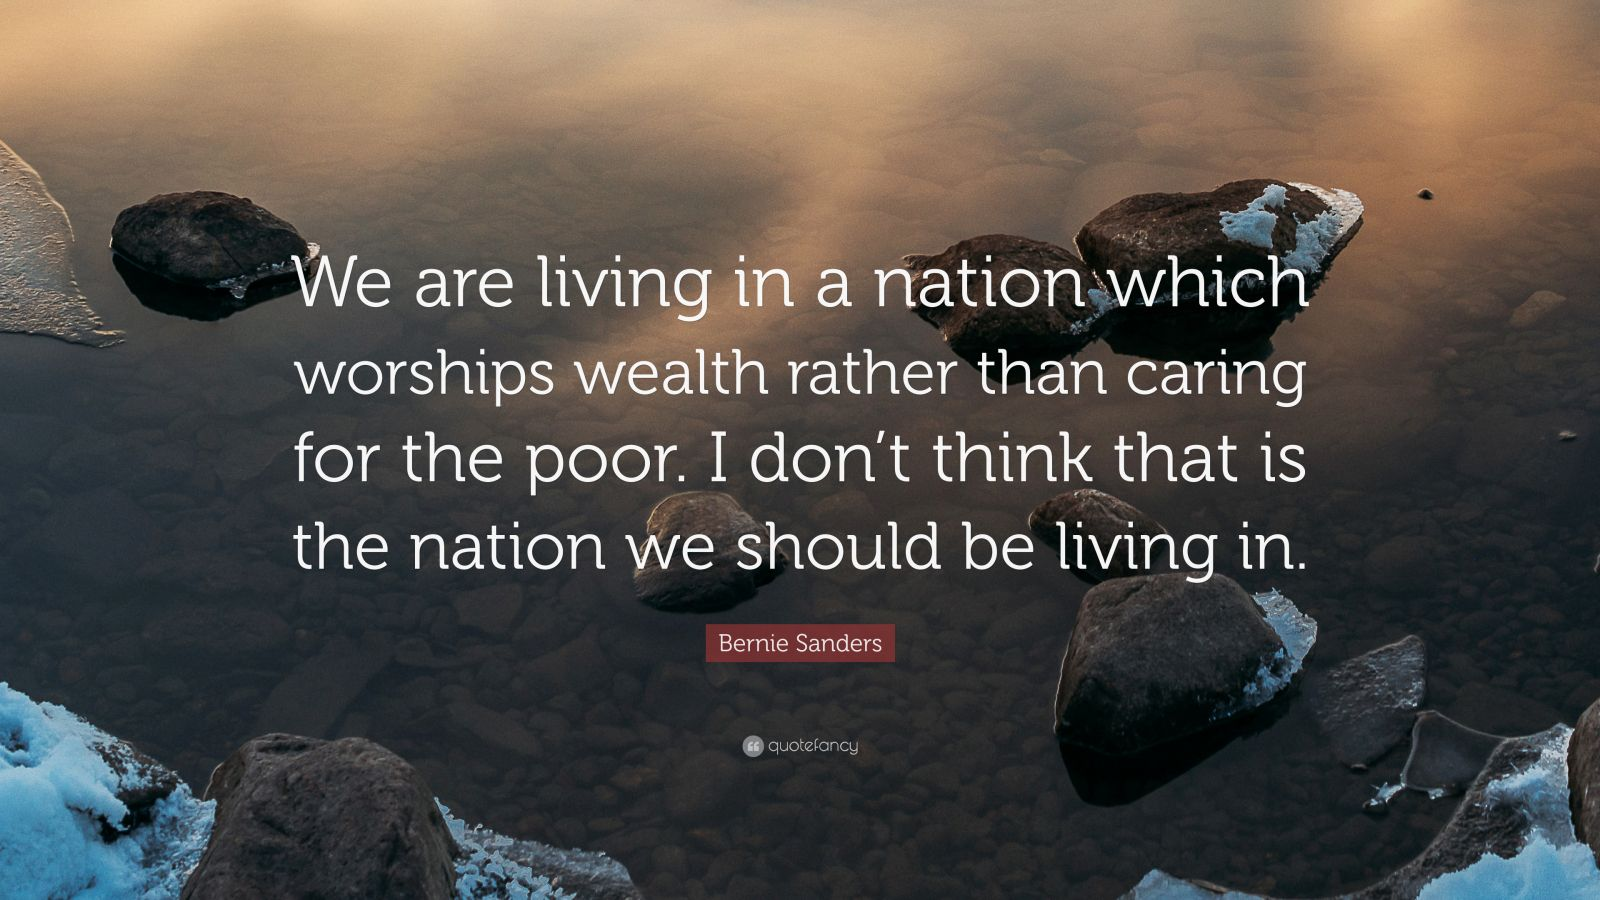 """Bernie Sanders Quote: """"We are living in a nation which worships wealth rather than caring for the poor. I don't think that is the nation we should be living in."""""""